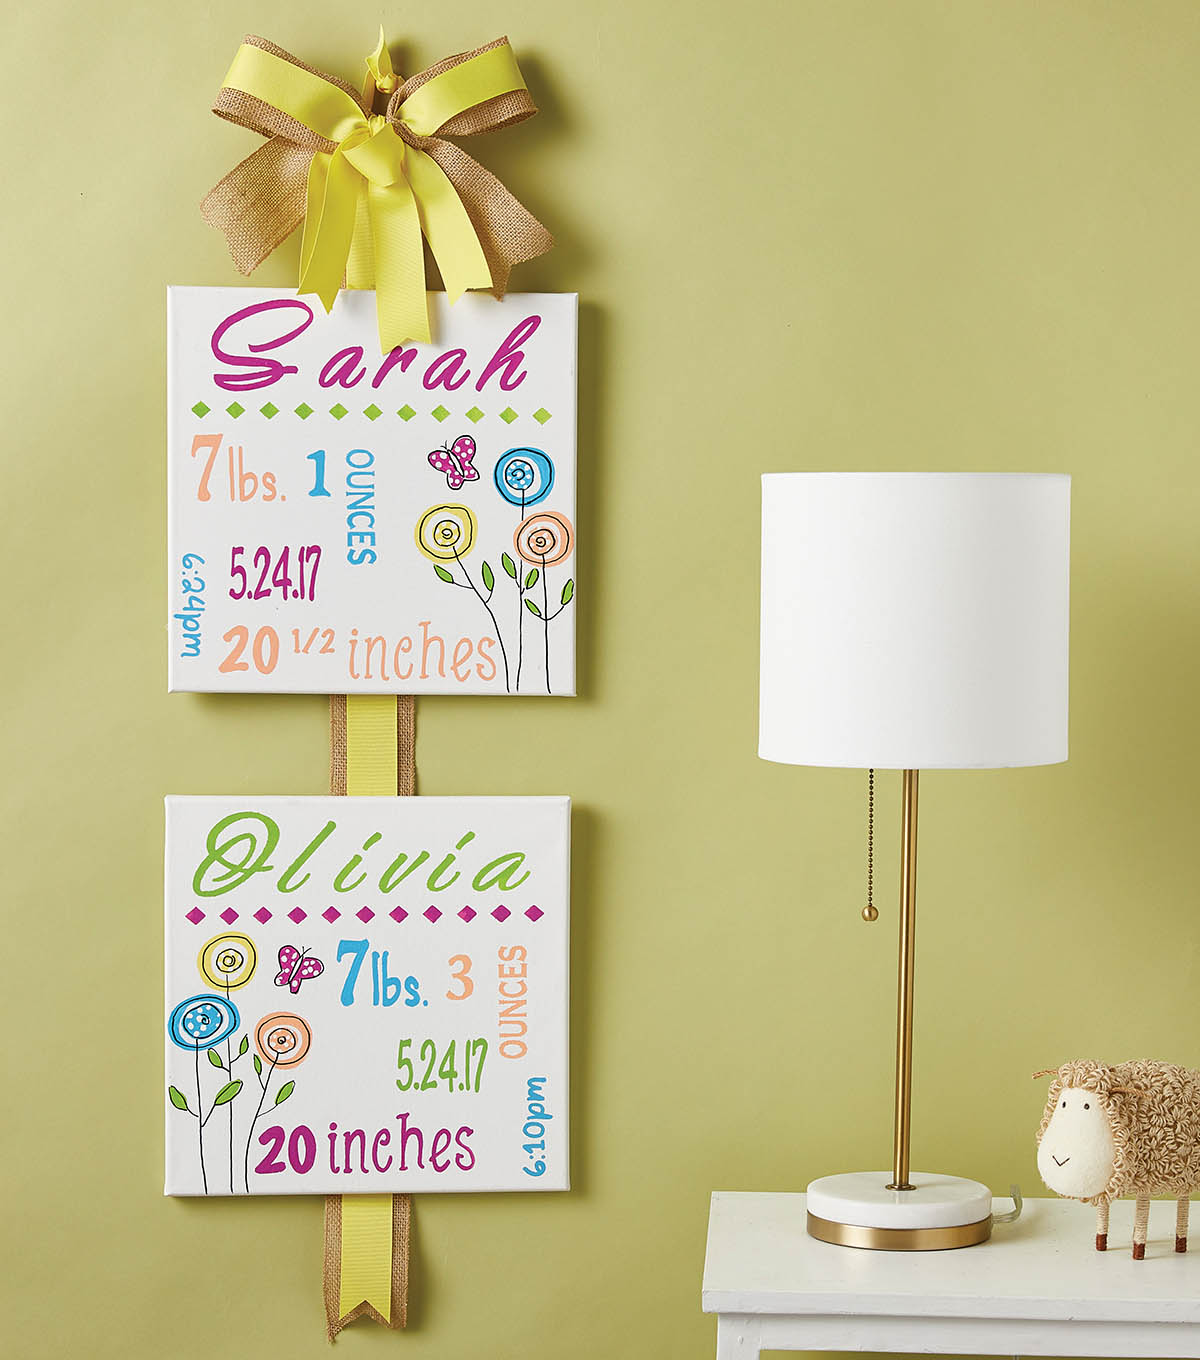 How To Make A Baby Announcement Canvas – How to Make a Baby Announcement